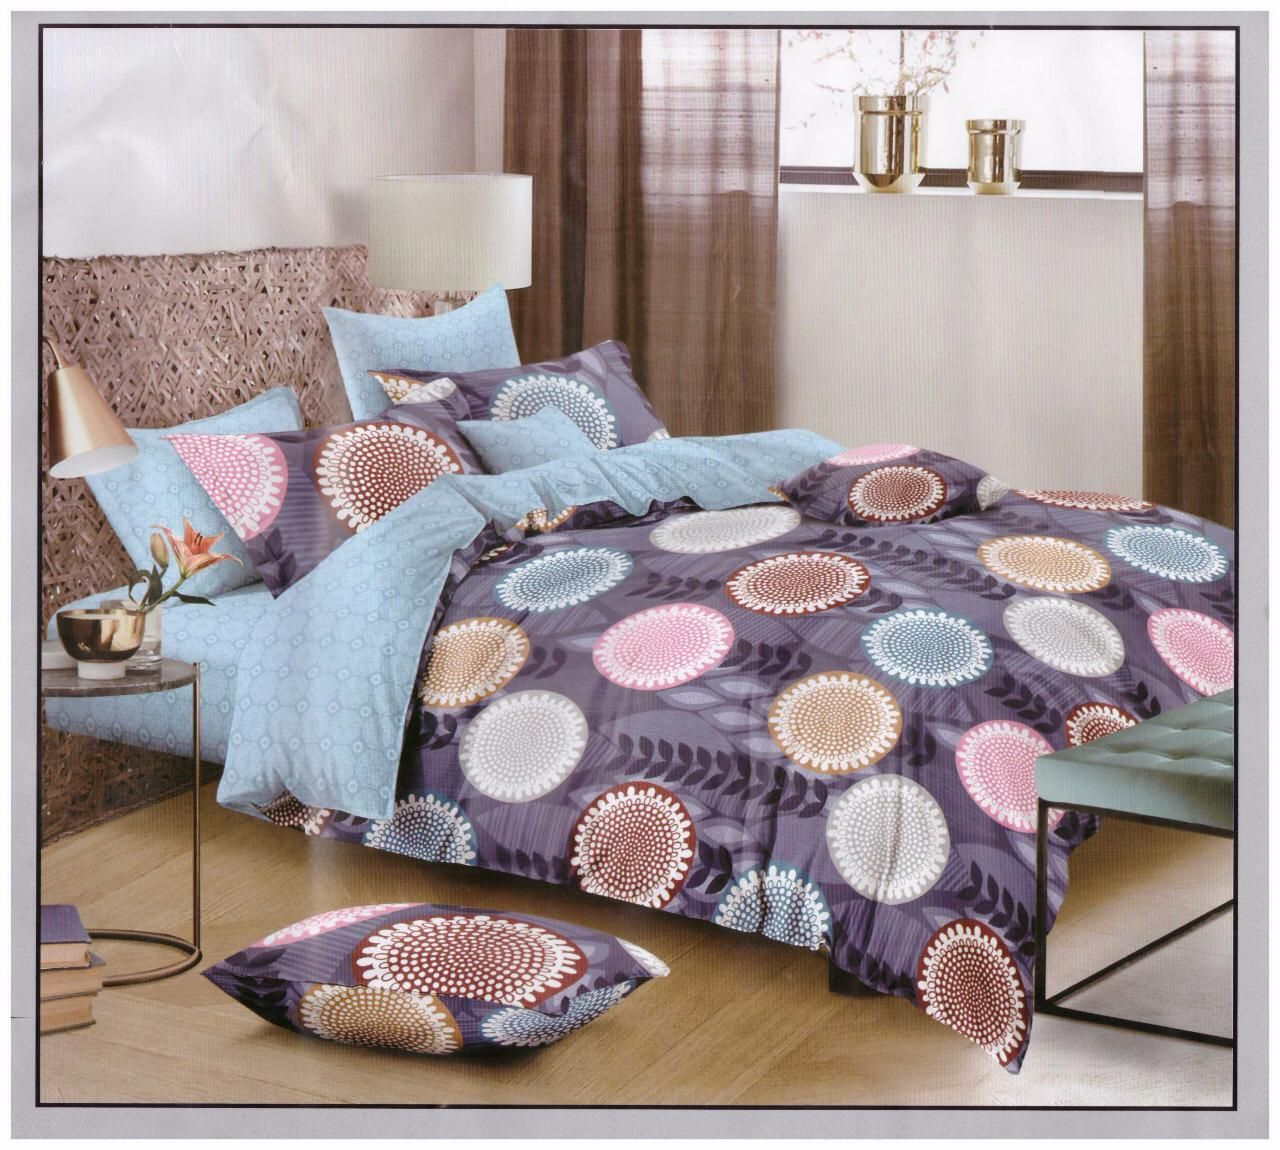 hotel bed linen suppliers in India in 2020 Wholesale